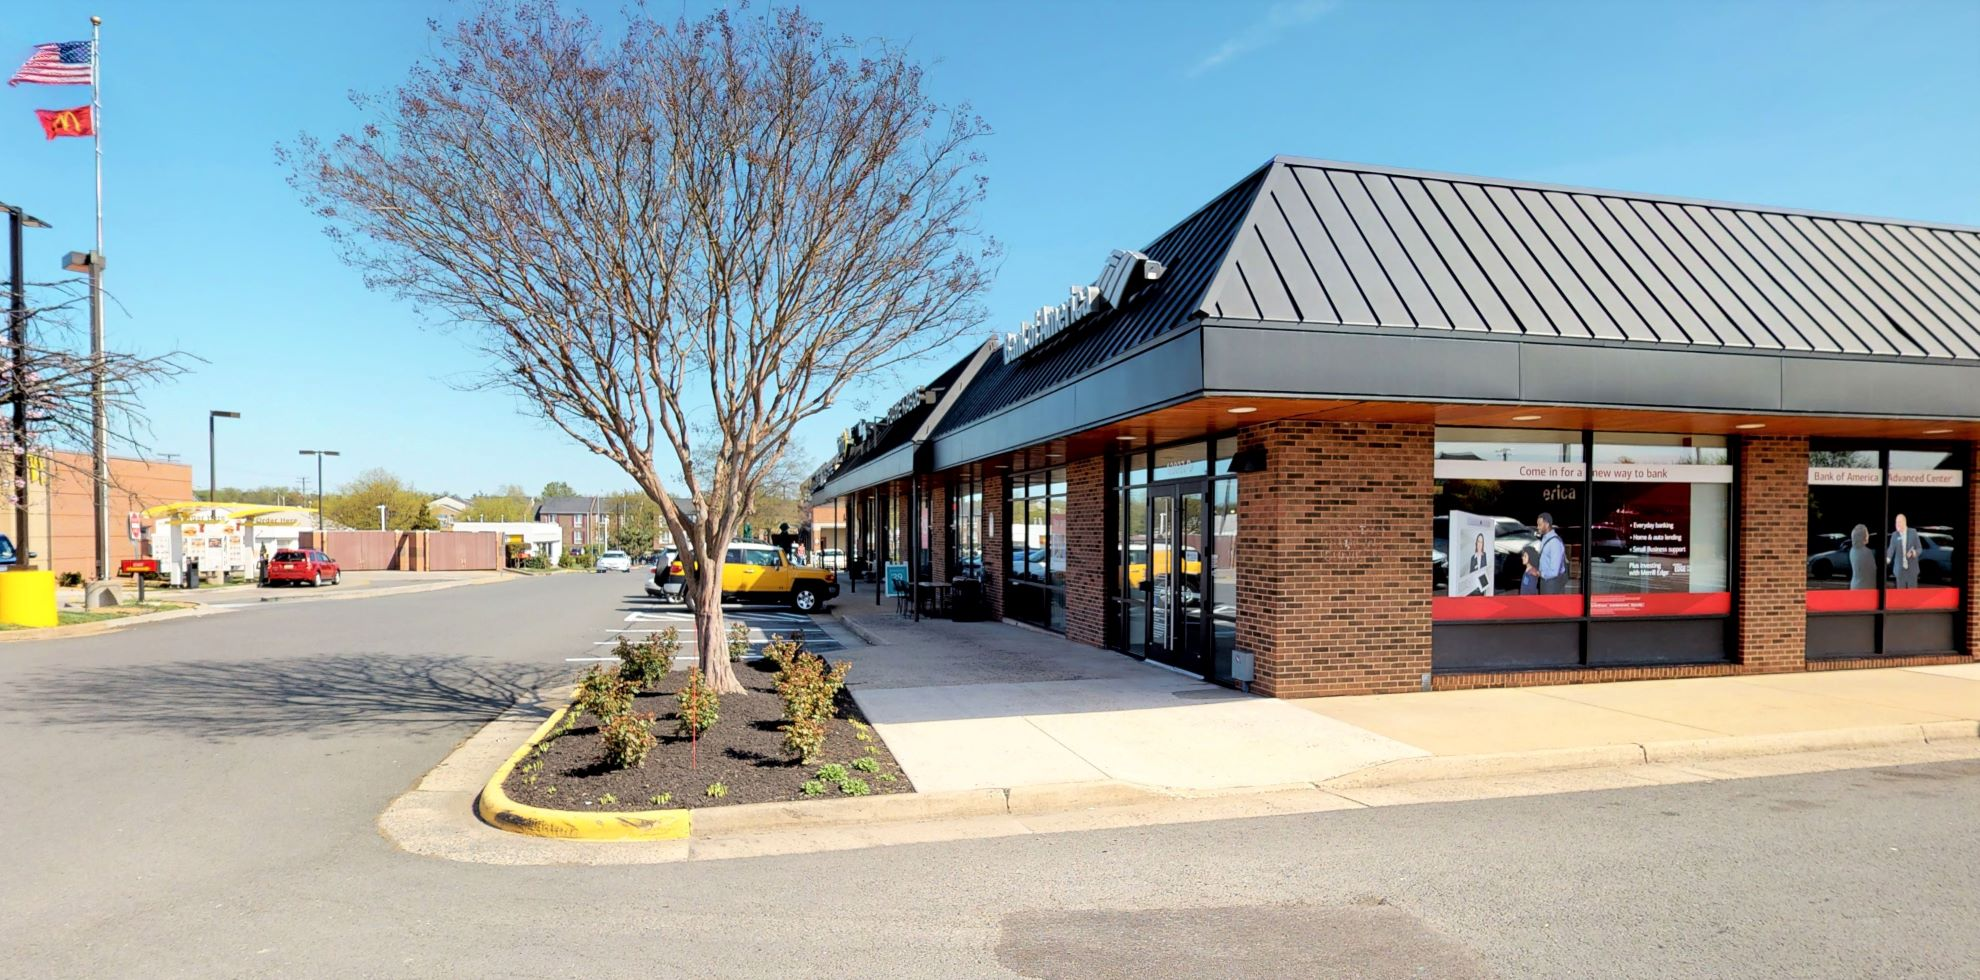 Bank of America Advanced Center with walk-up ATM   13037 Lee Jackson Memorial Hwy STE D, Fairfax, VA 22033